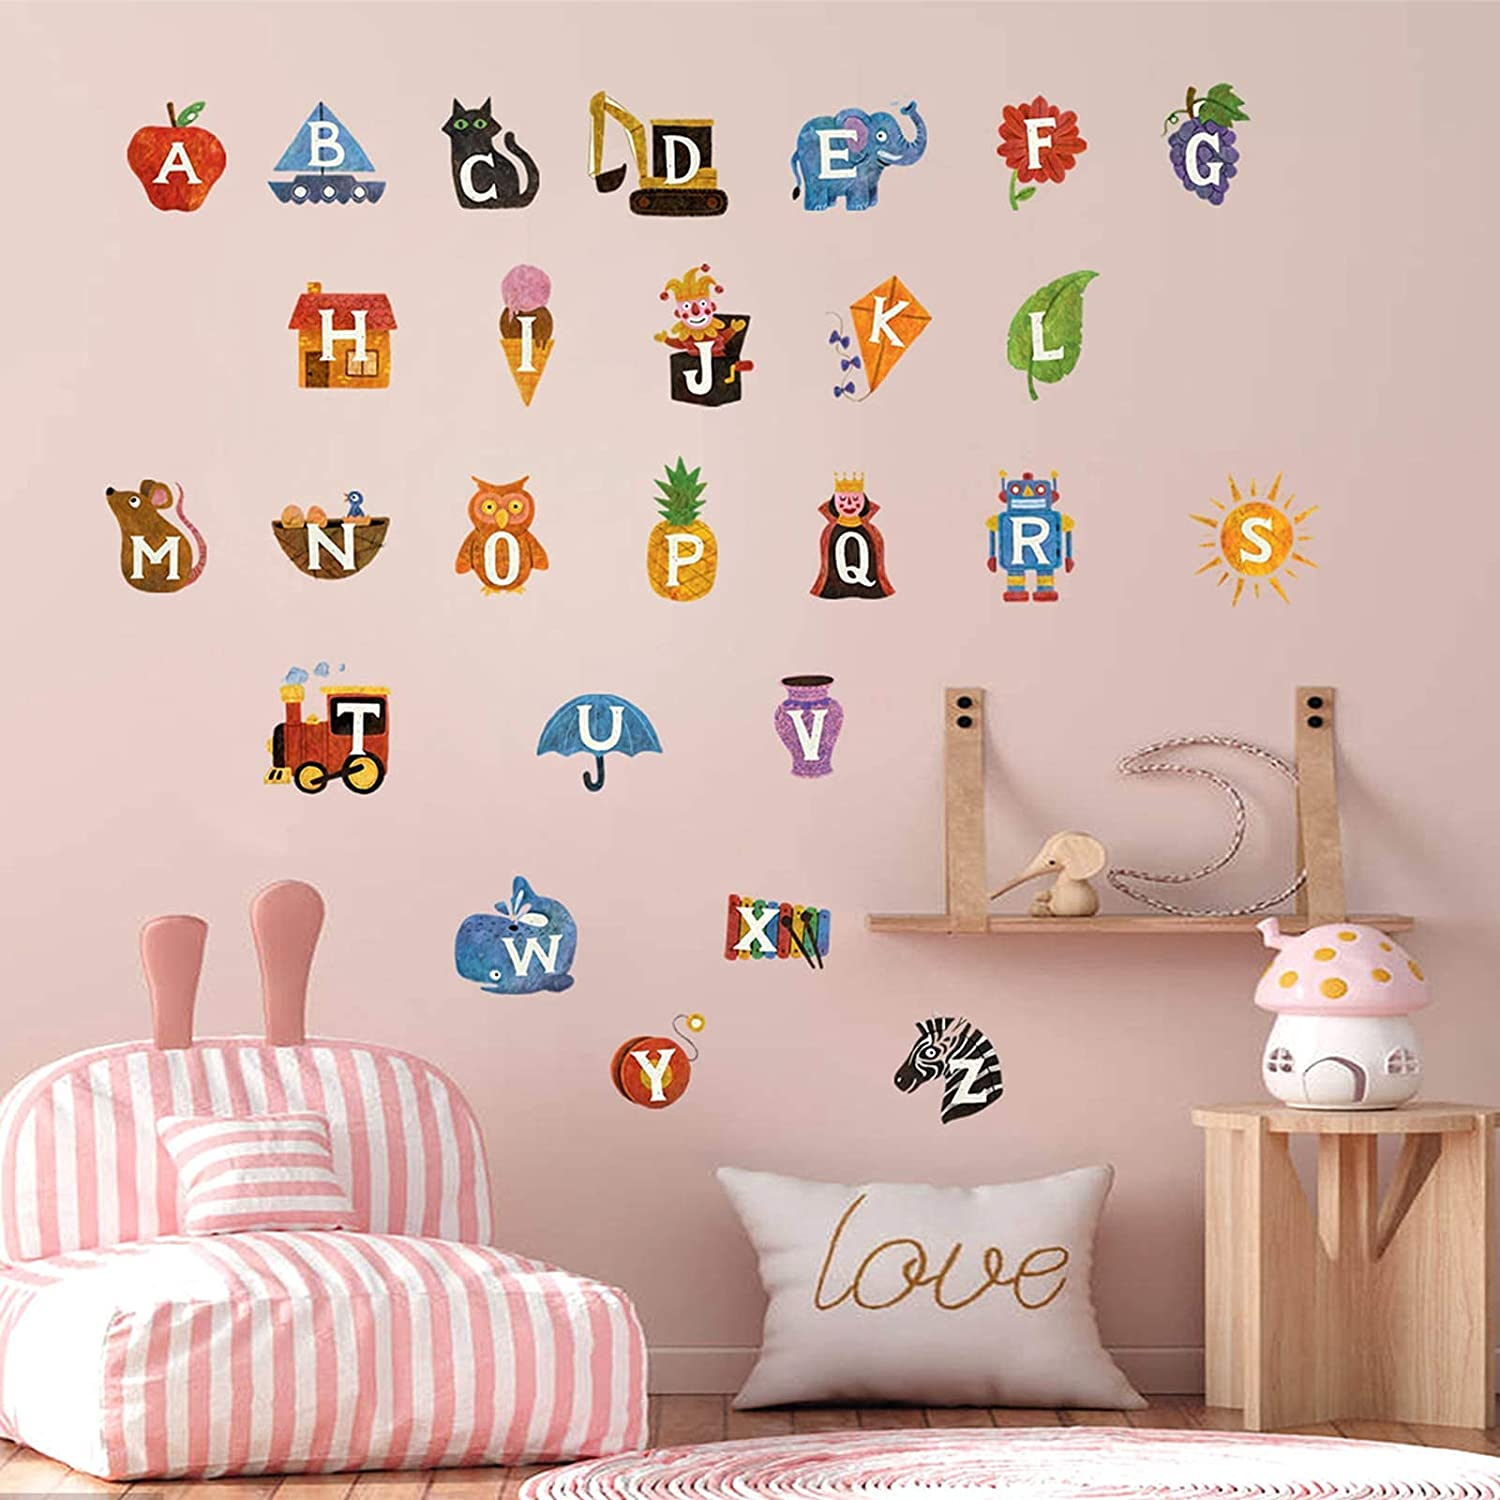 Alphabet Wall Decals for Kids Wall Decals, DILIBRA ABC Letters Educational Removeable Wall Stickers, Peel and Stick Mural Watercolor Home Decor Decoration for Classroom Nursery Bedroom